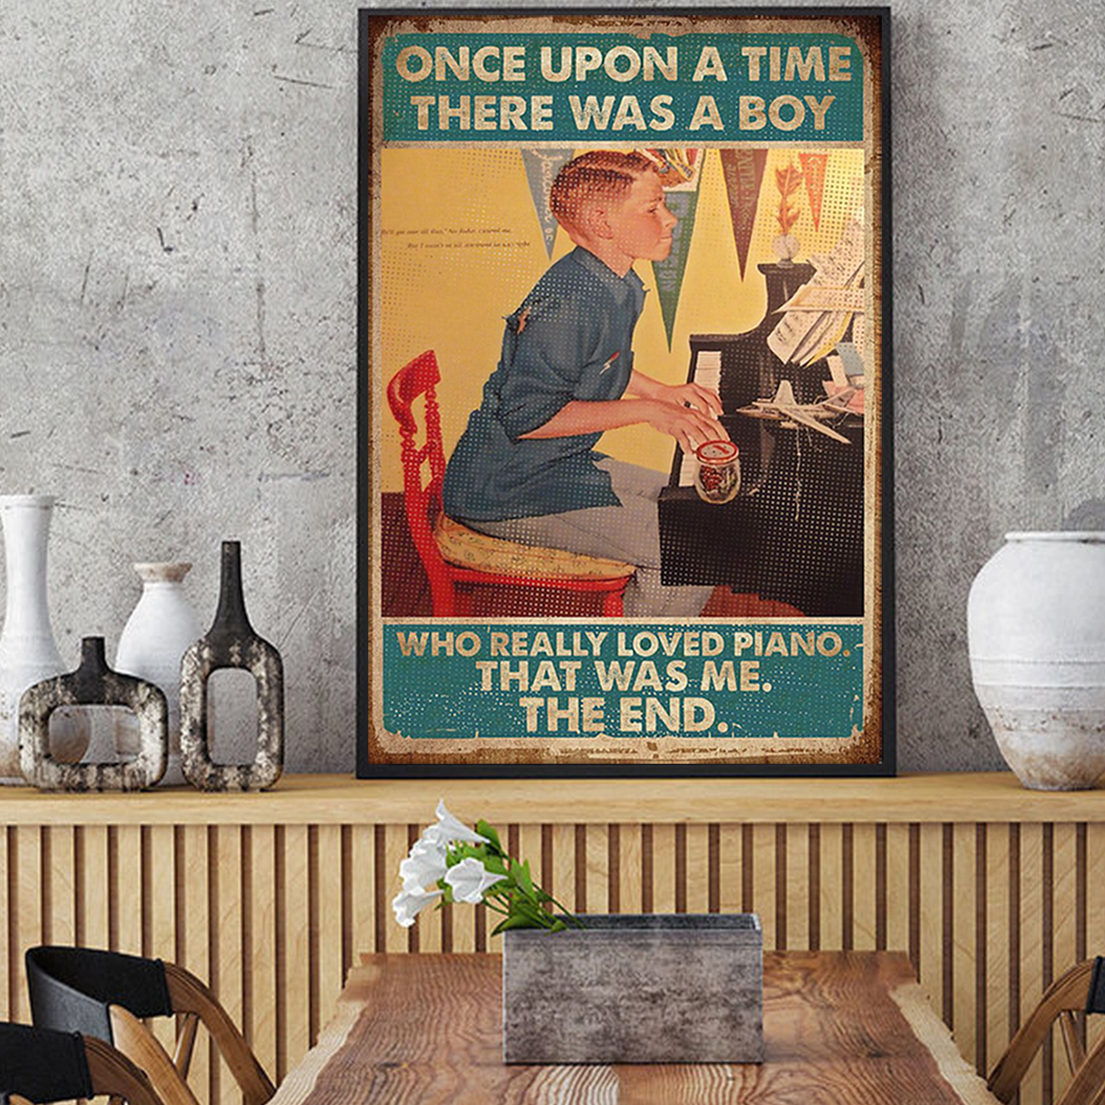 Once upon a time there was a boy who really loved piano poster A3